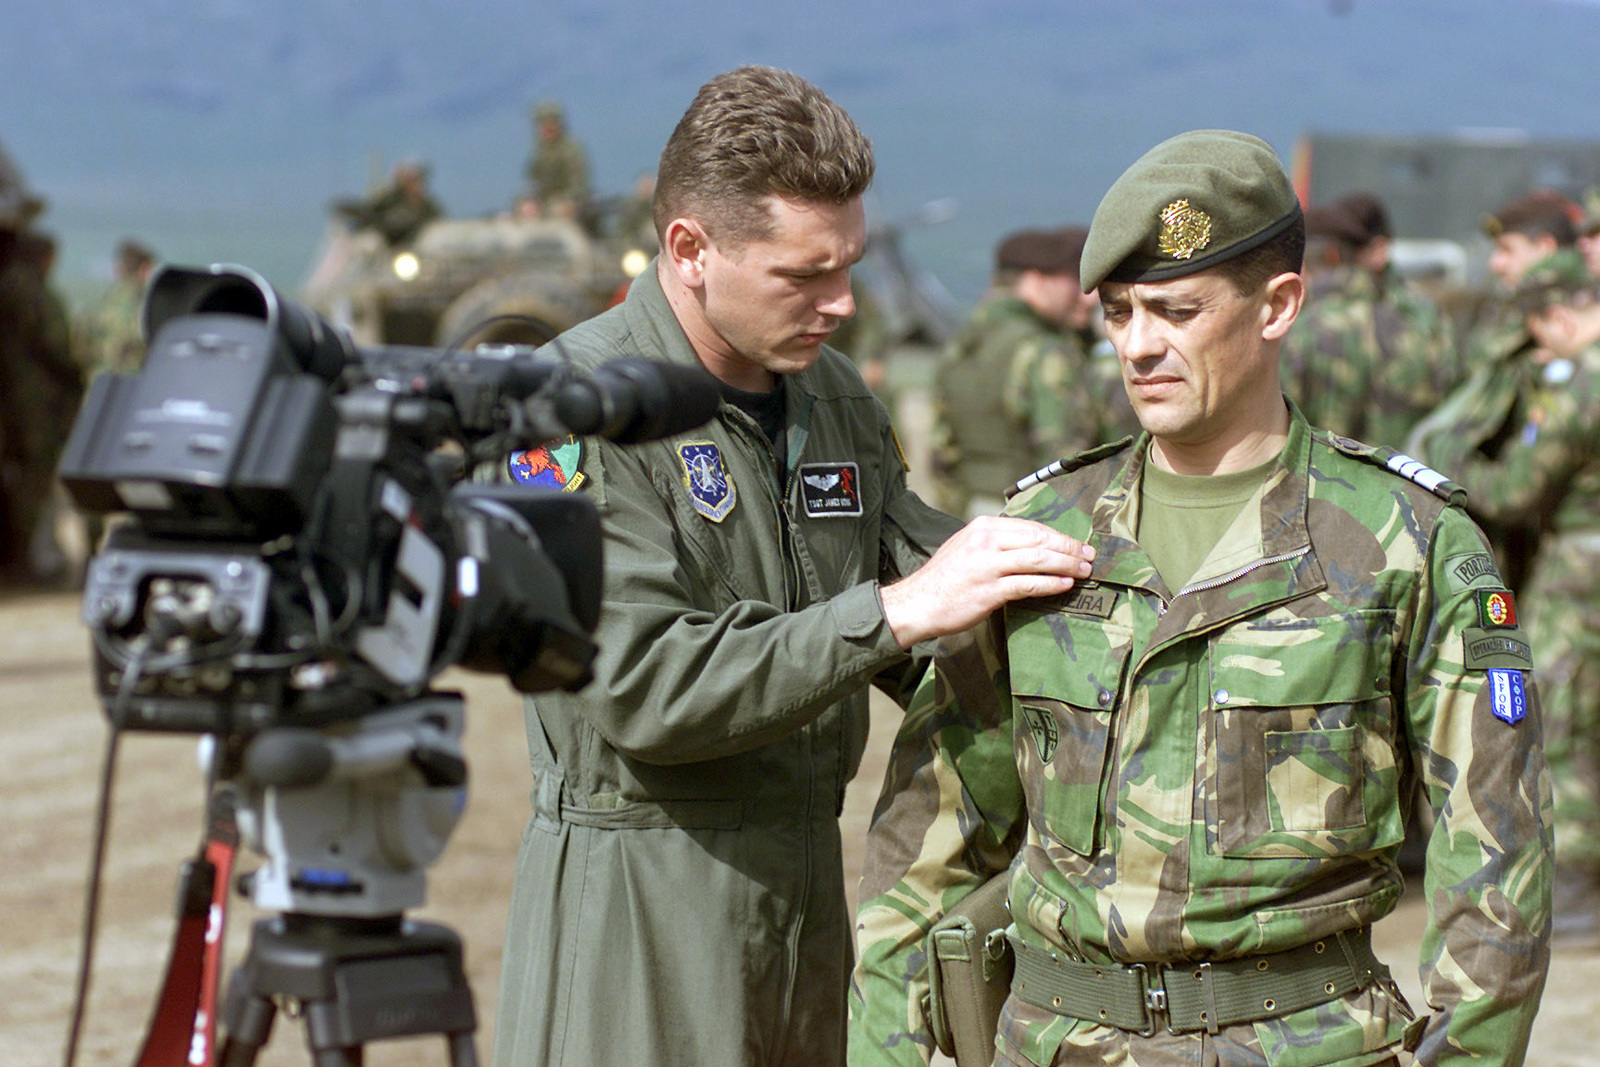 US Air Force (USAF) Technical Sergeant (TSGT) James Monk (left), a Videographer assigned to the 30th Communications Squadron (CS), prepares to document a videotape interview with Portuguese Army Lieutenant Colonel (LTC) Isidro De Morais Pereira, Commander, 2nd Armored Infantry Battalion, at the conclusion of Exercise LIBERIAN RESOLVE, held at the Glamoc live-fire range, Camp Butmir, Bosnia and Herzegovina